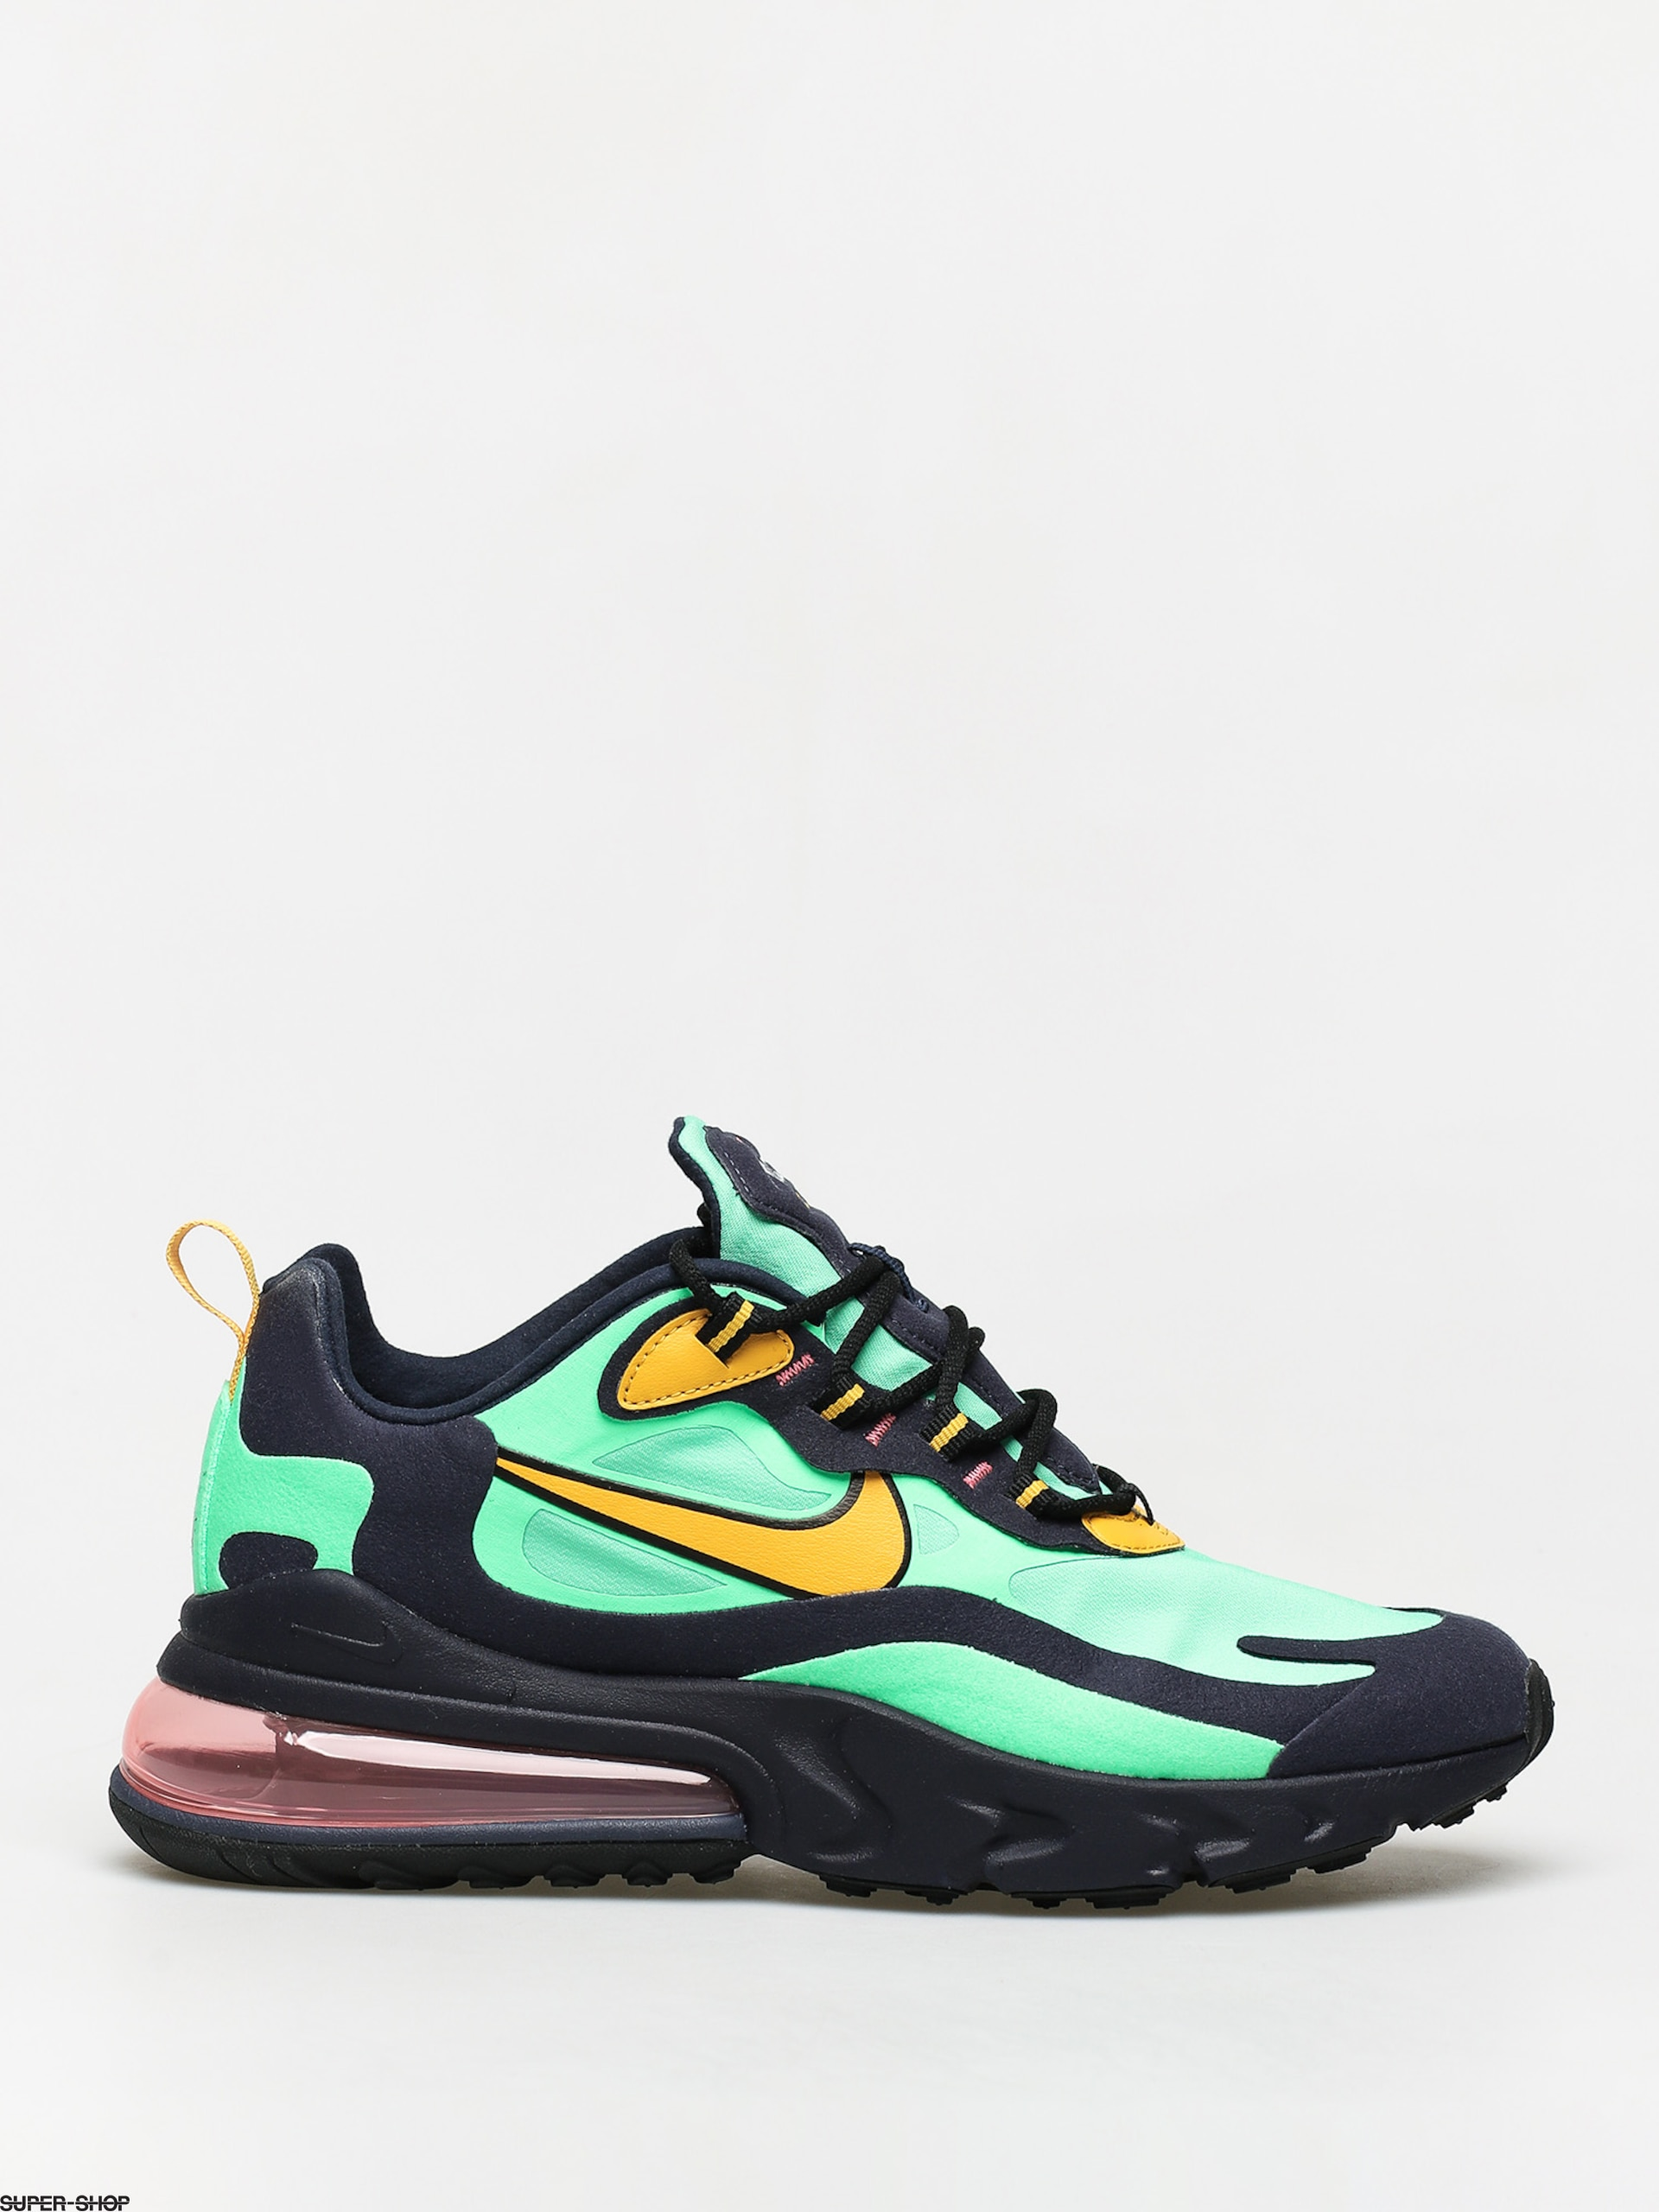 Nike Air Max 270 React Shoes (electro greenyellow ochre obsidian)